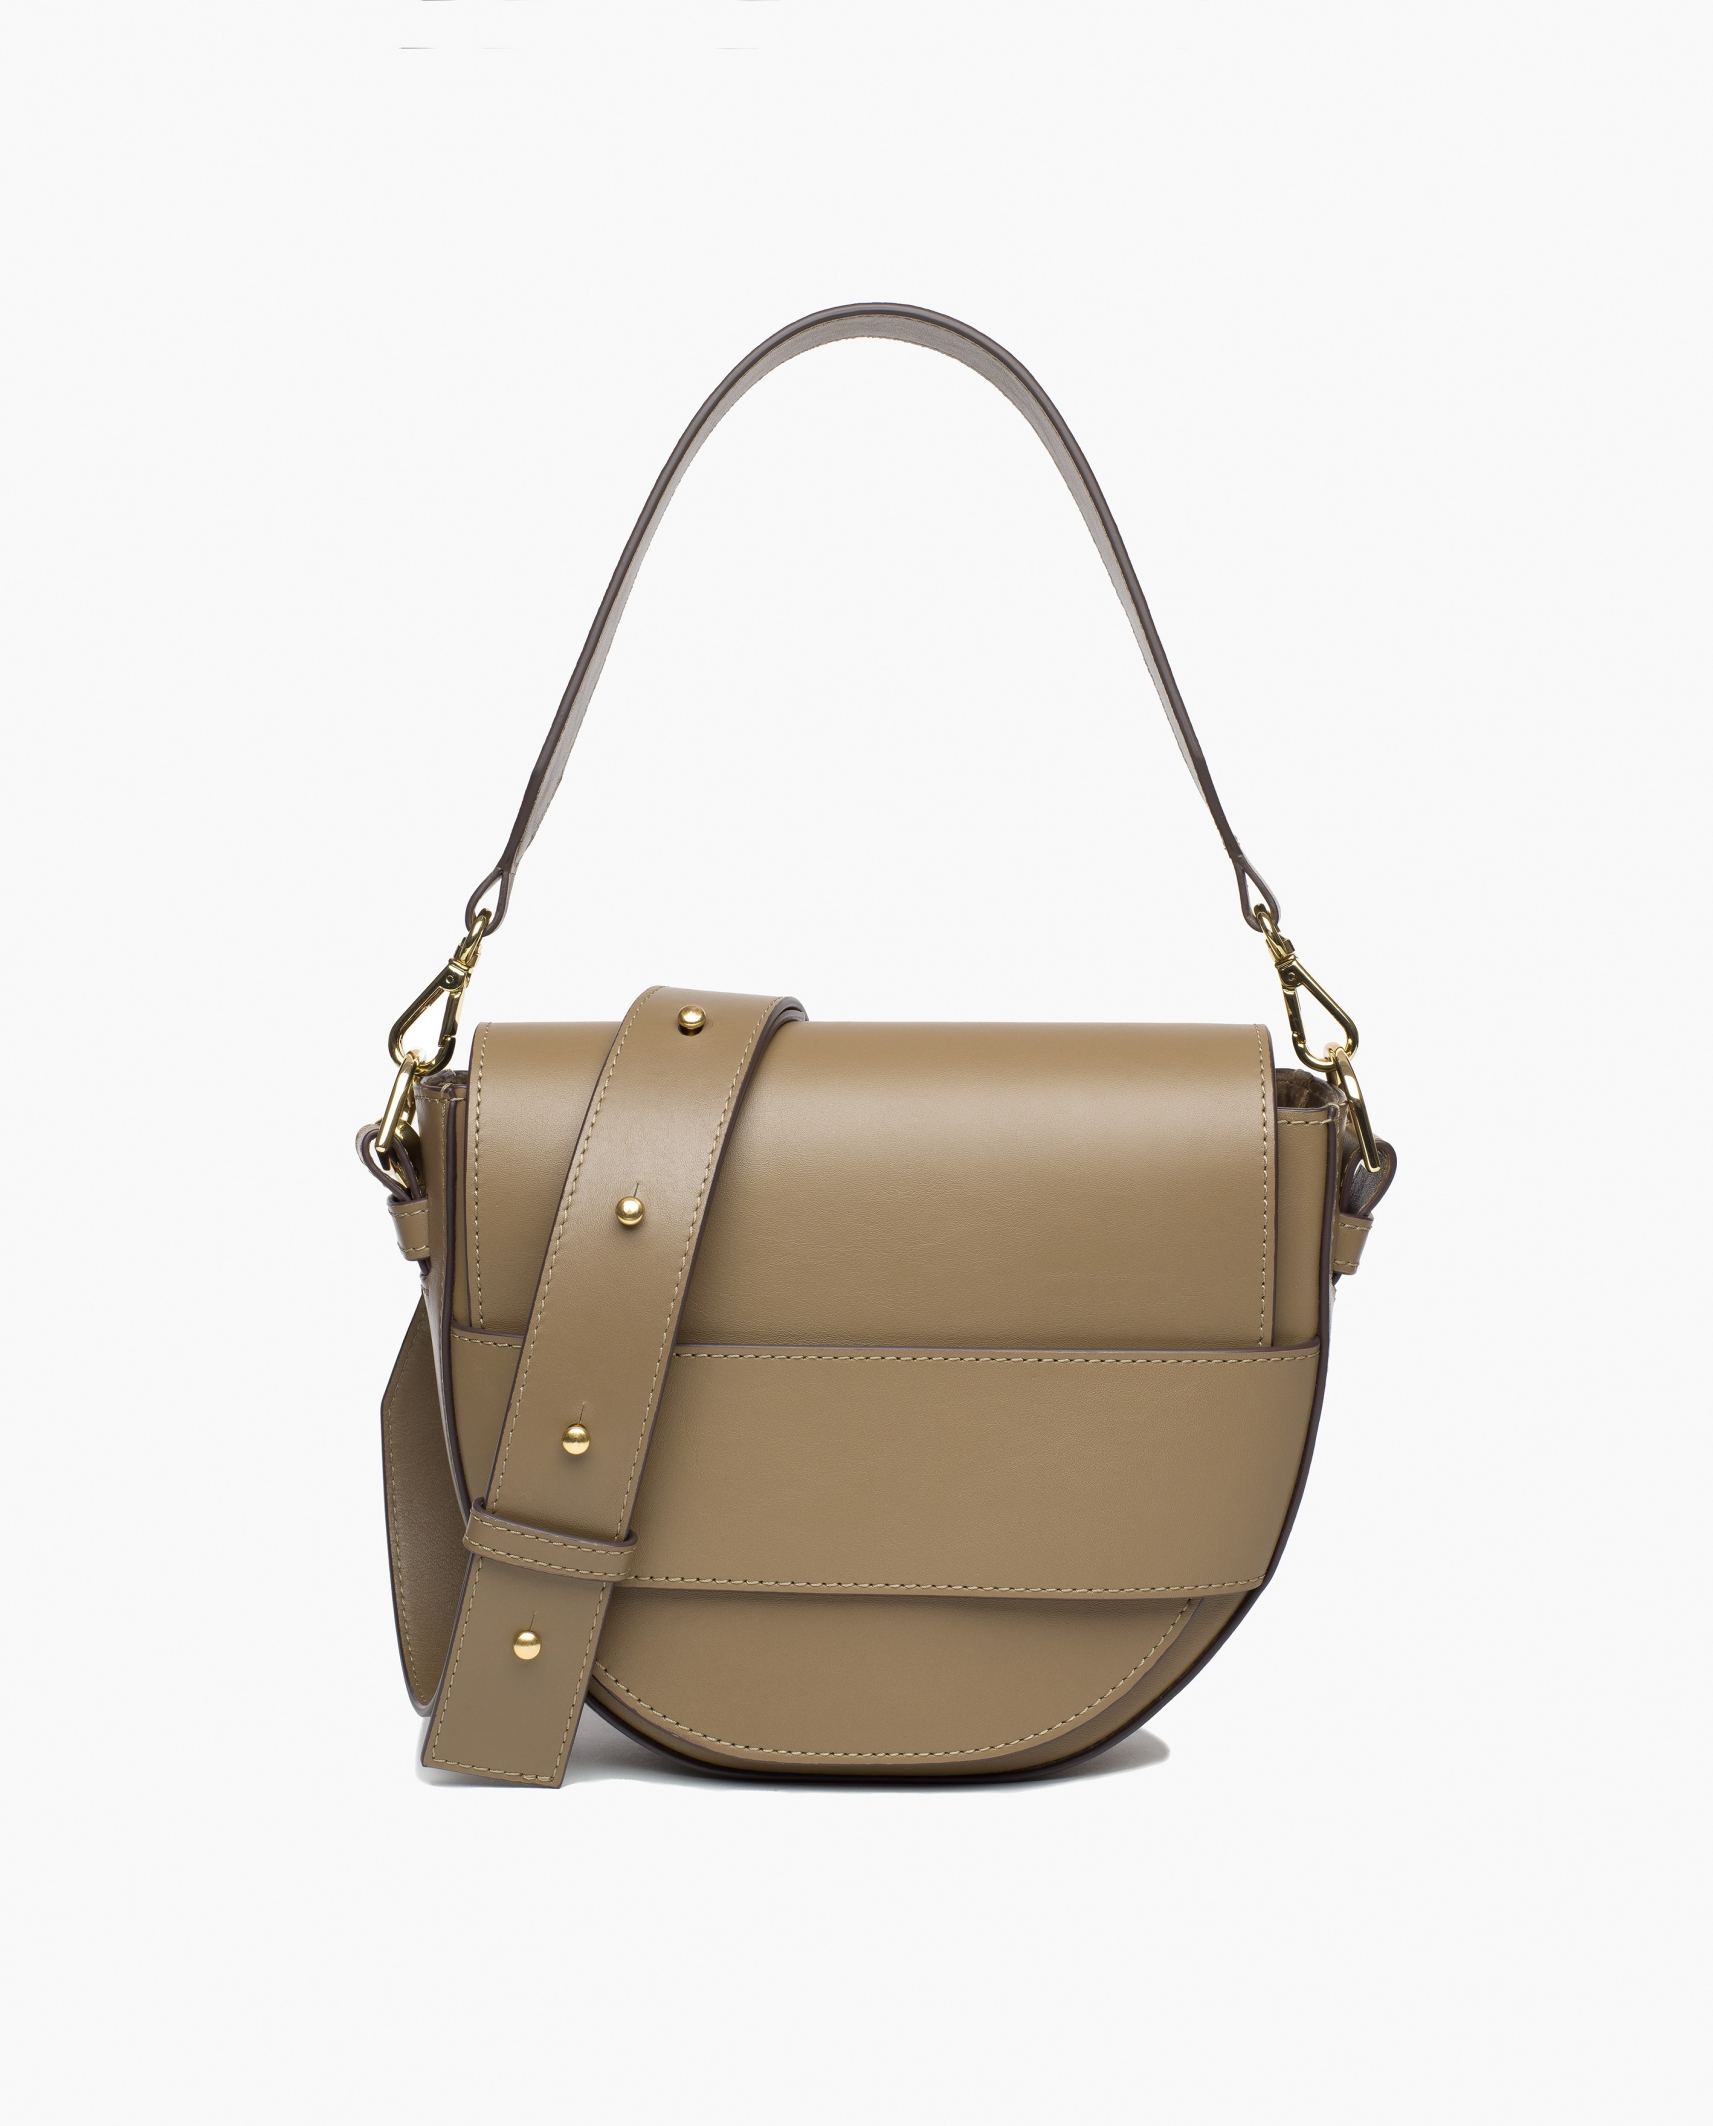 DARCY DUO TAUPE